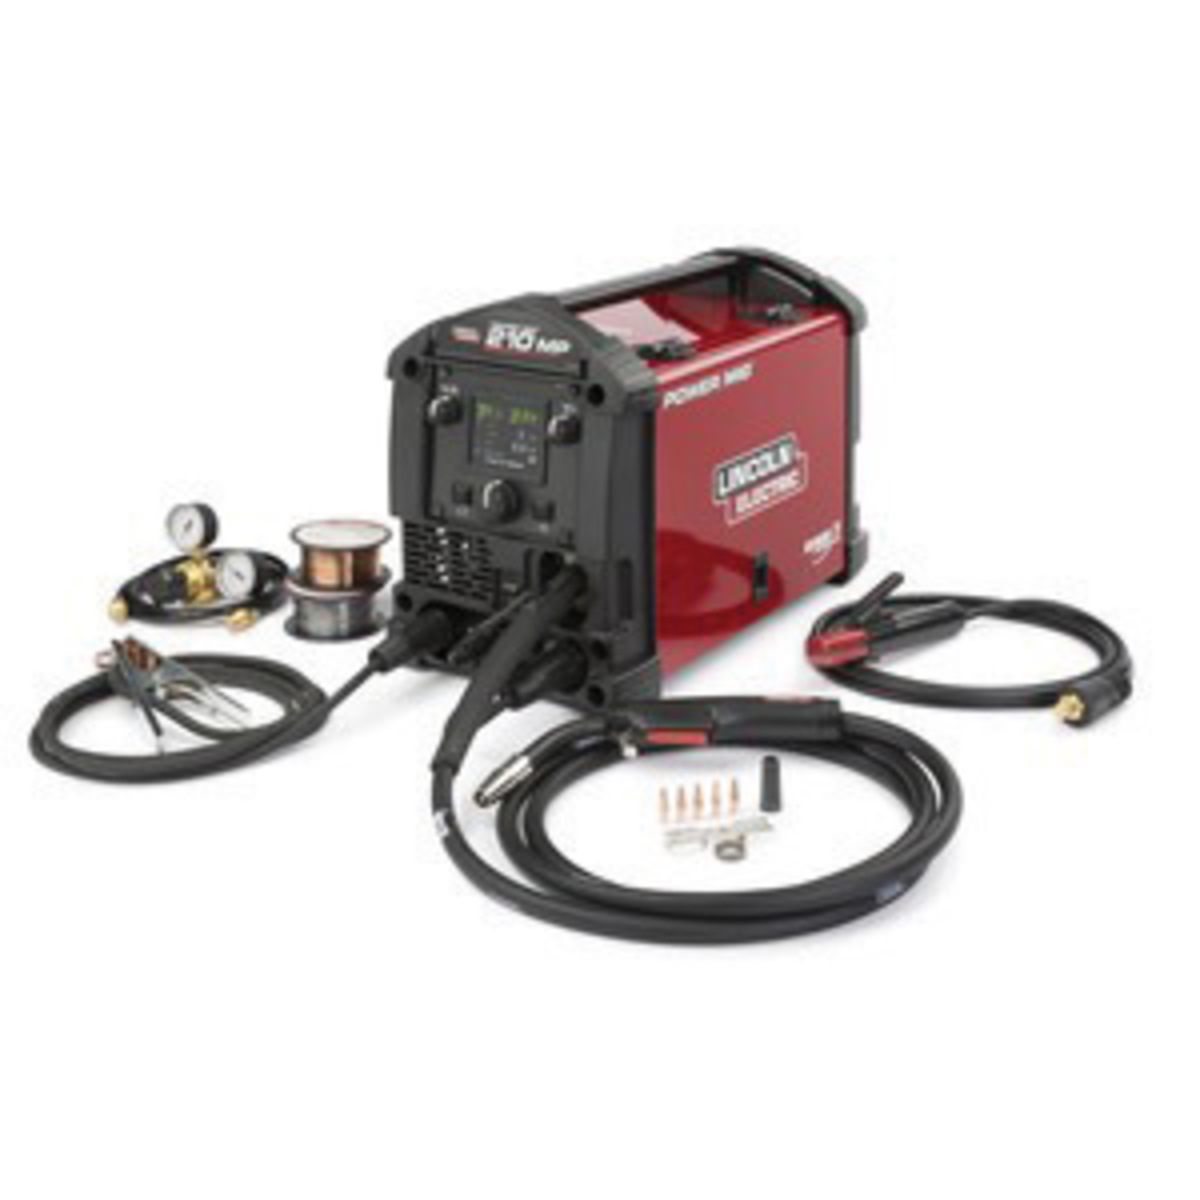 Airgas - LINK3963-1 - Lincoln Electric® POWER MIG® 210 MP MIG ...